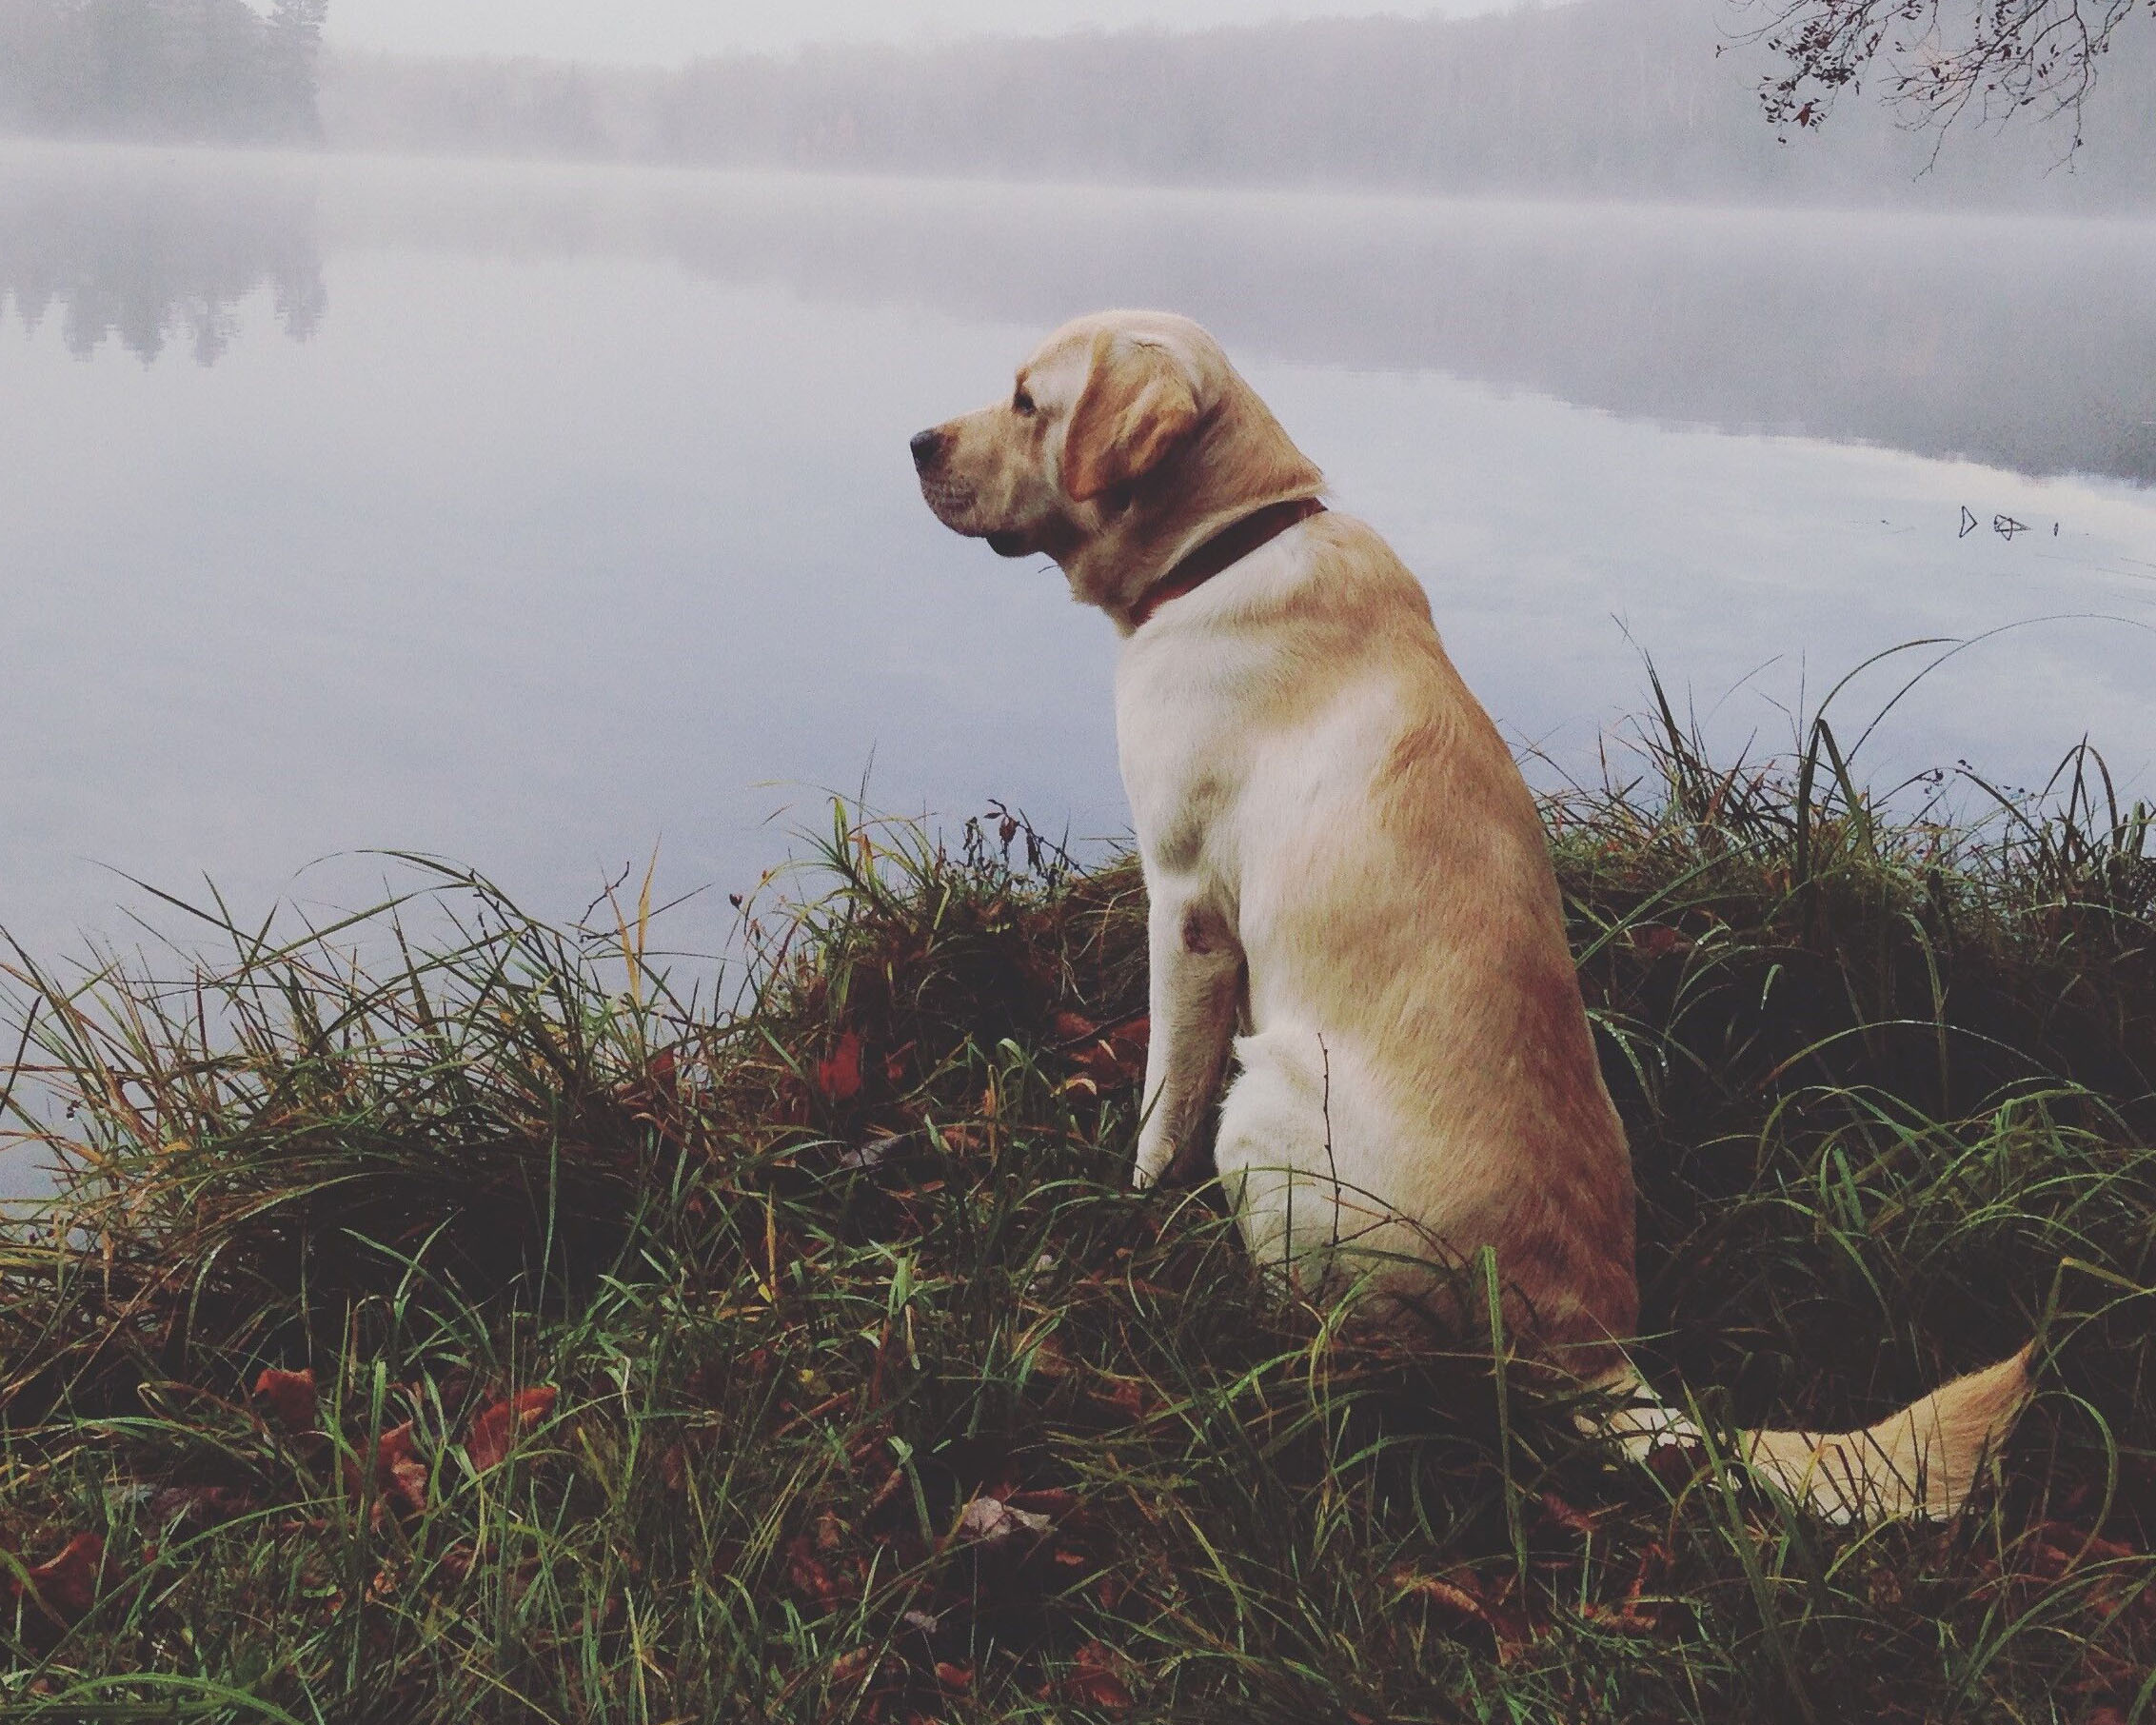 An image of a golden lab sitting on a grass bank over looking a lake